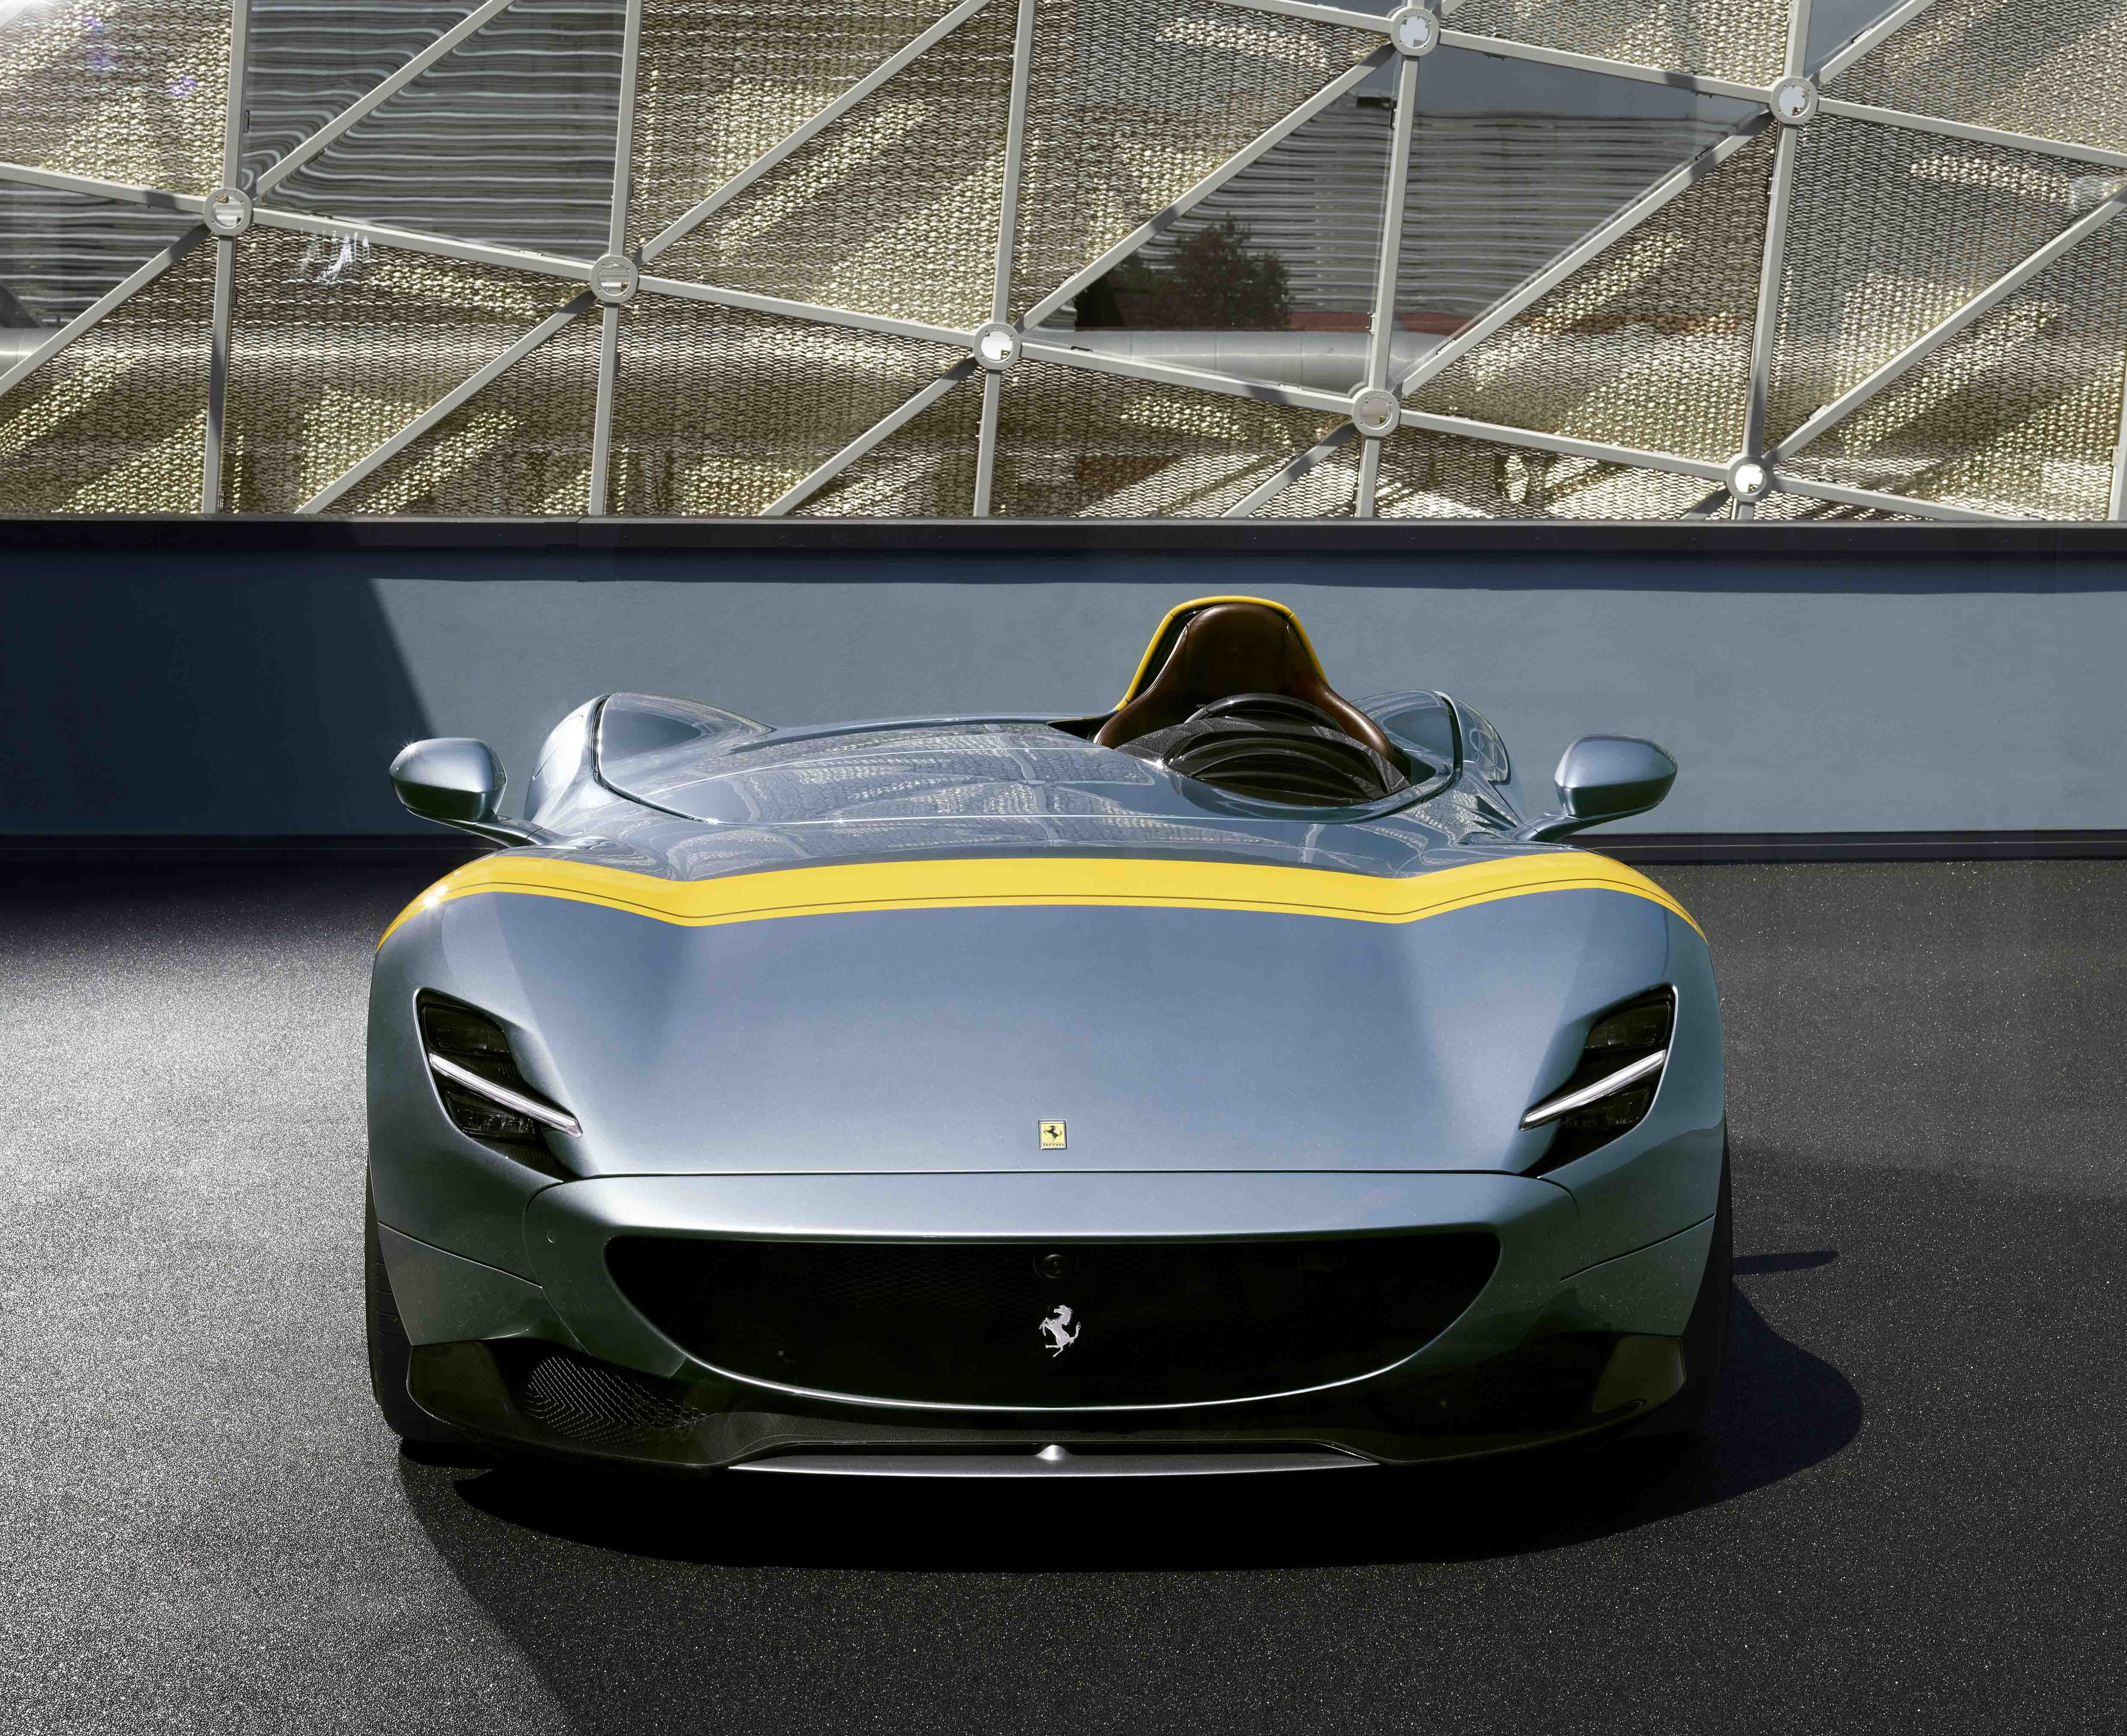 Ferrari S New Open Top Single Seat Monza Sp1 Which The Italian Luxury Carmaker Has Released As A Limited Edition Model Photo Xinhua